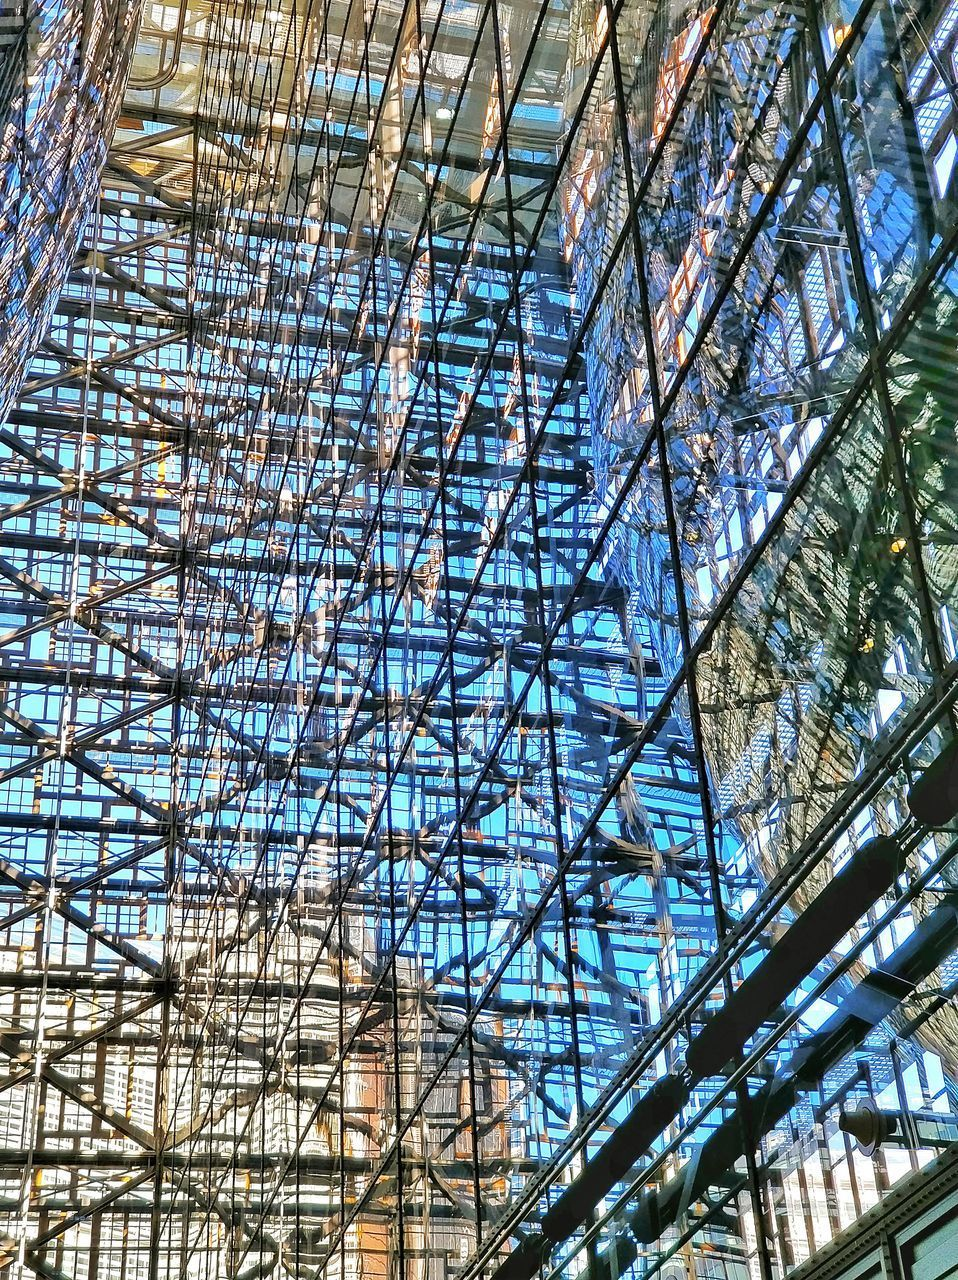 LOW ANGLE VIEW OF GLASS CEILING ON BUILDING